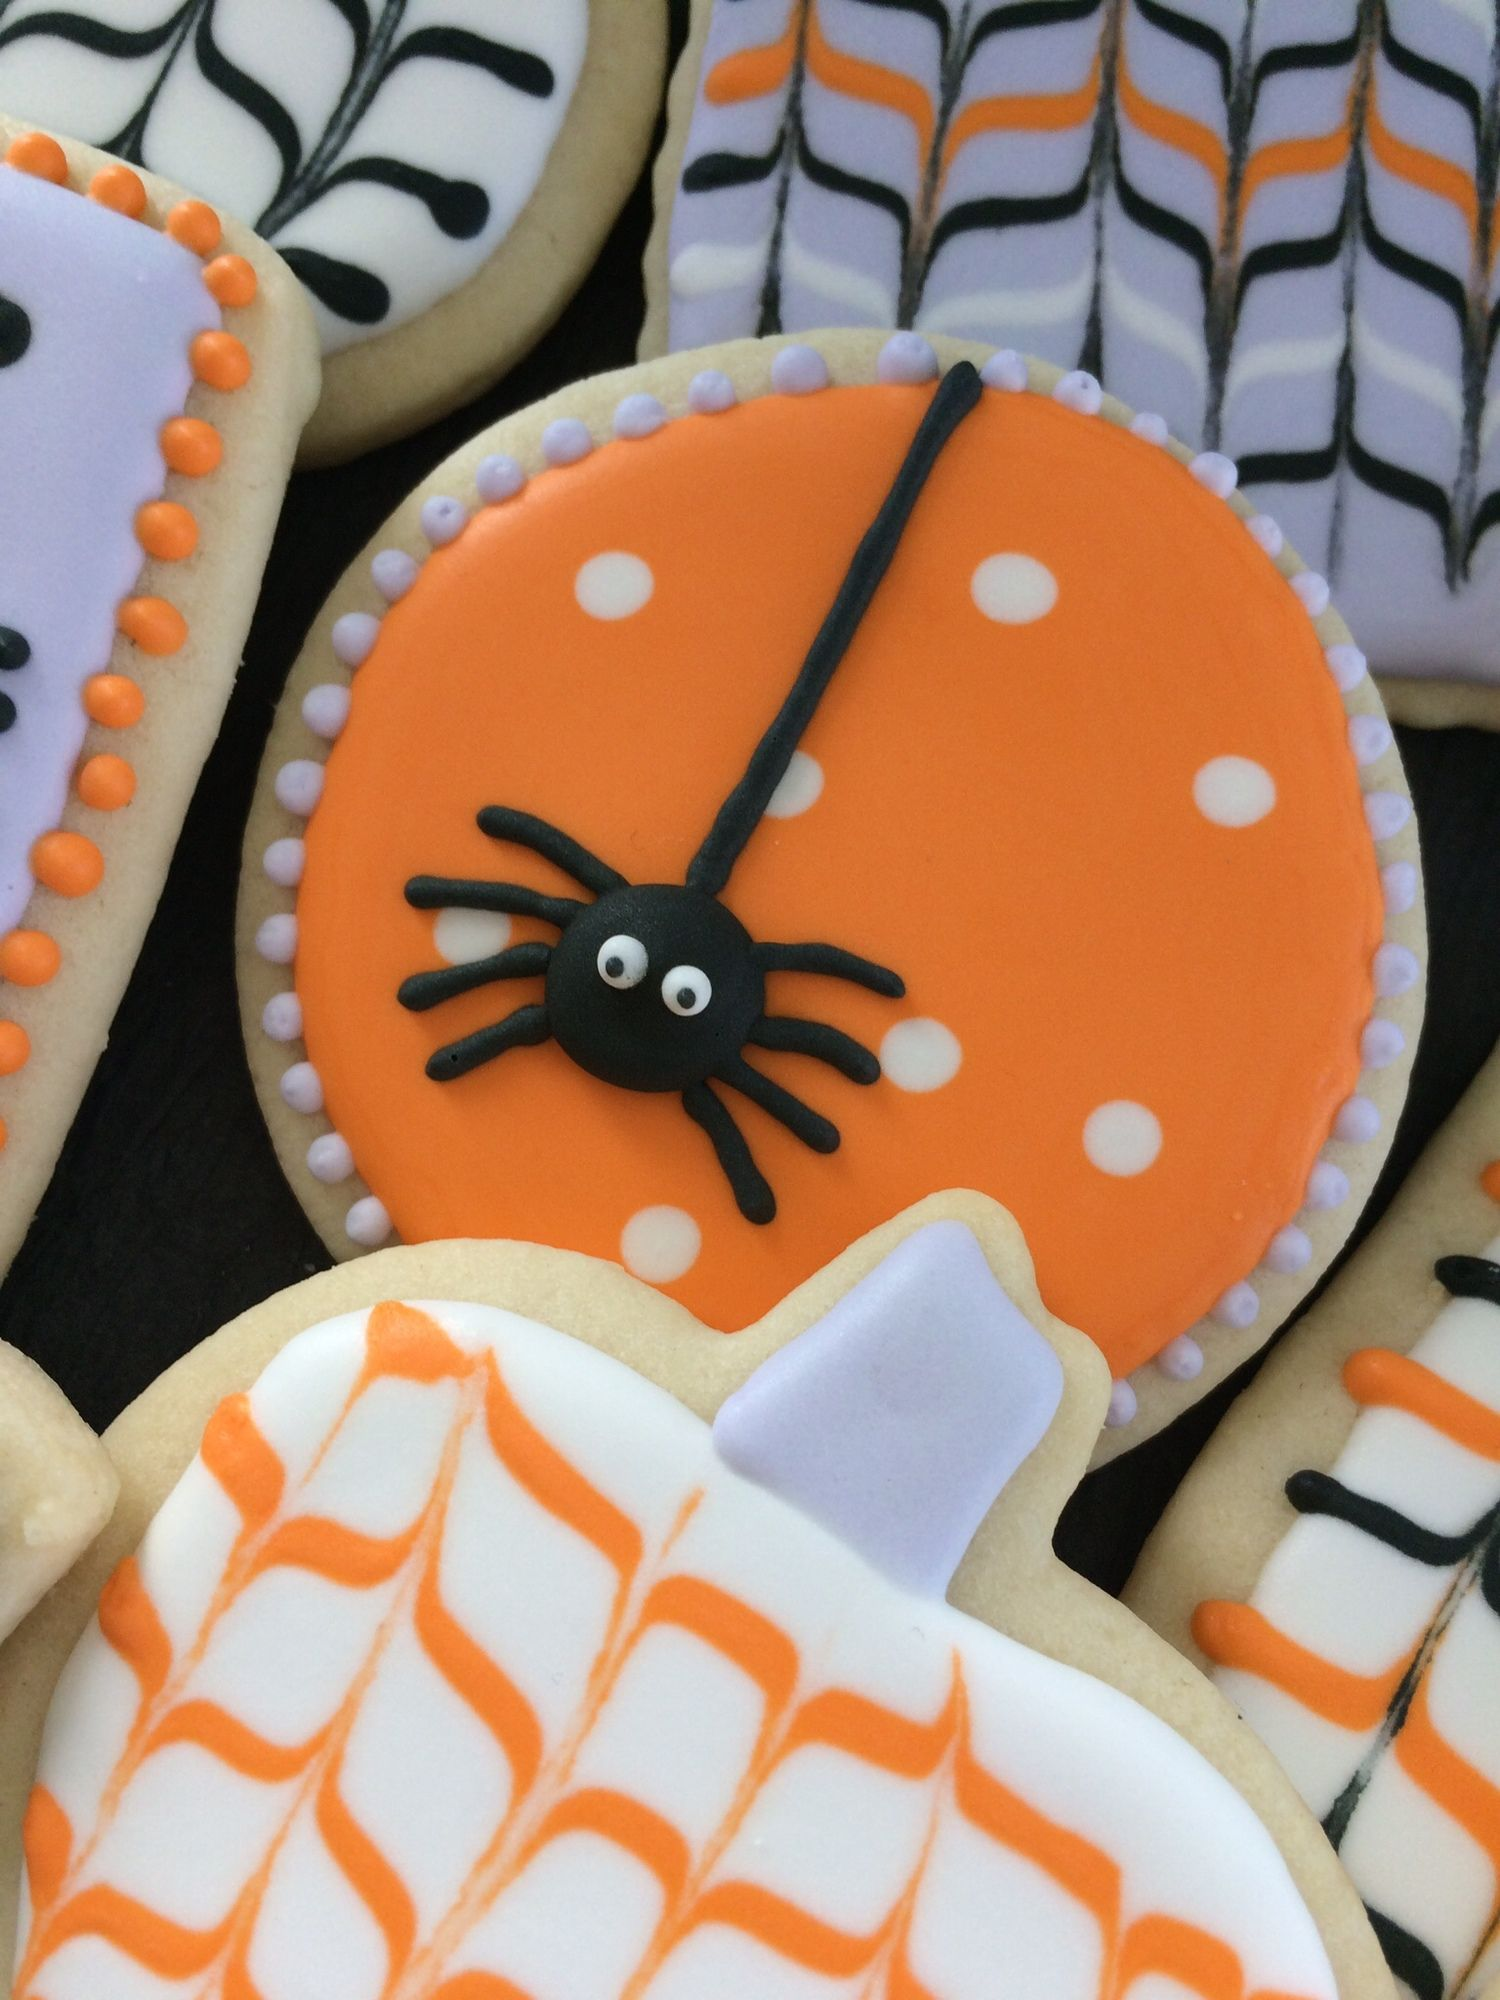 Pin by Catie Moran on Decorated Cookies Pinterest - Halloween Decorated Cookies